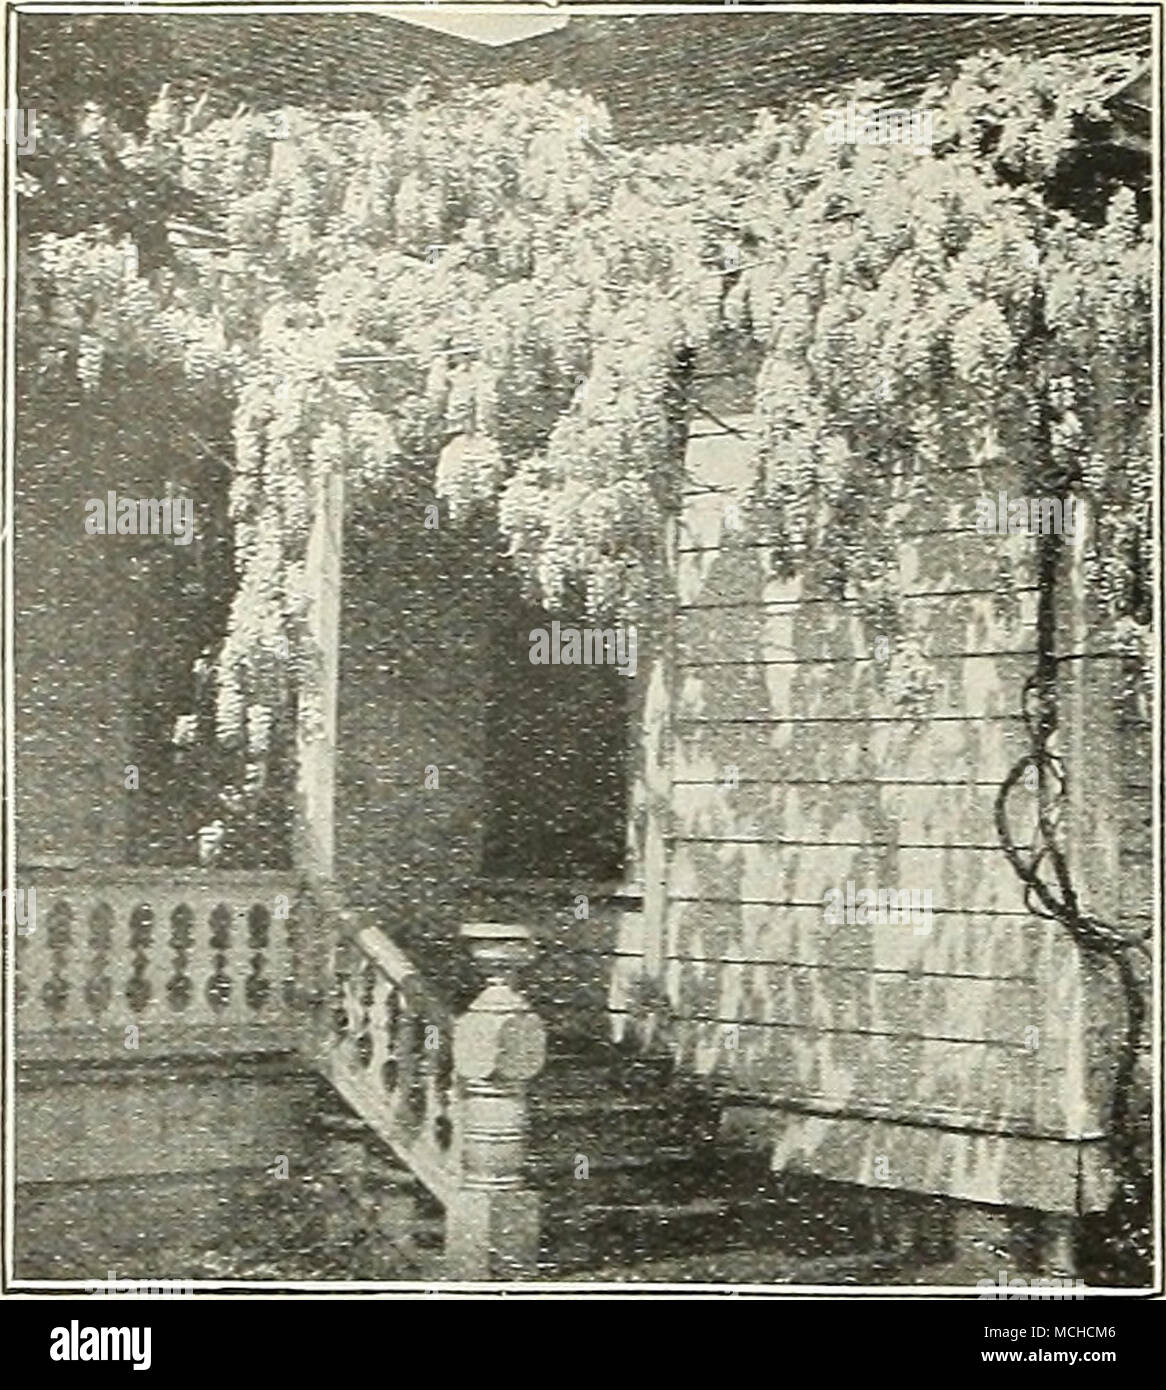 Wisteria Sinensis Wisterias One Of The Best Hardy Climbers